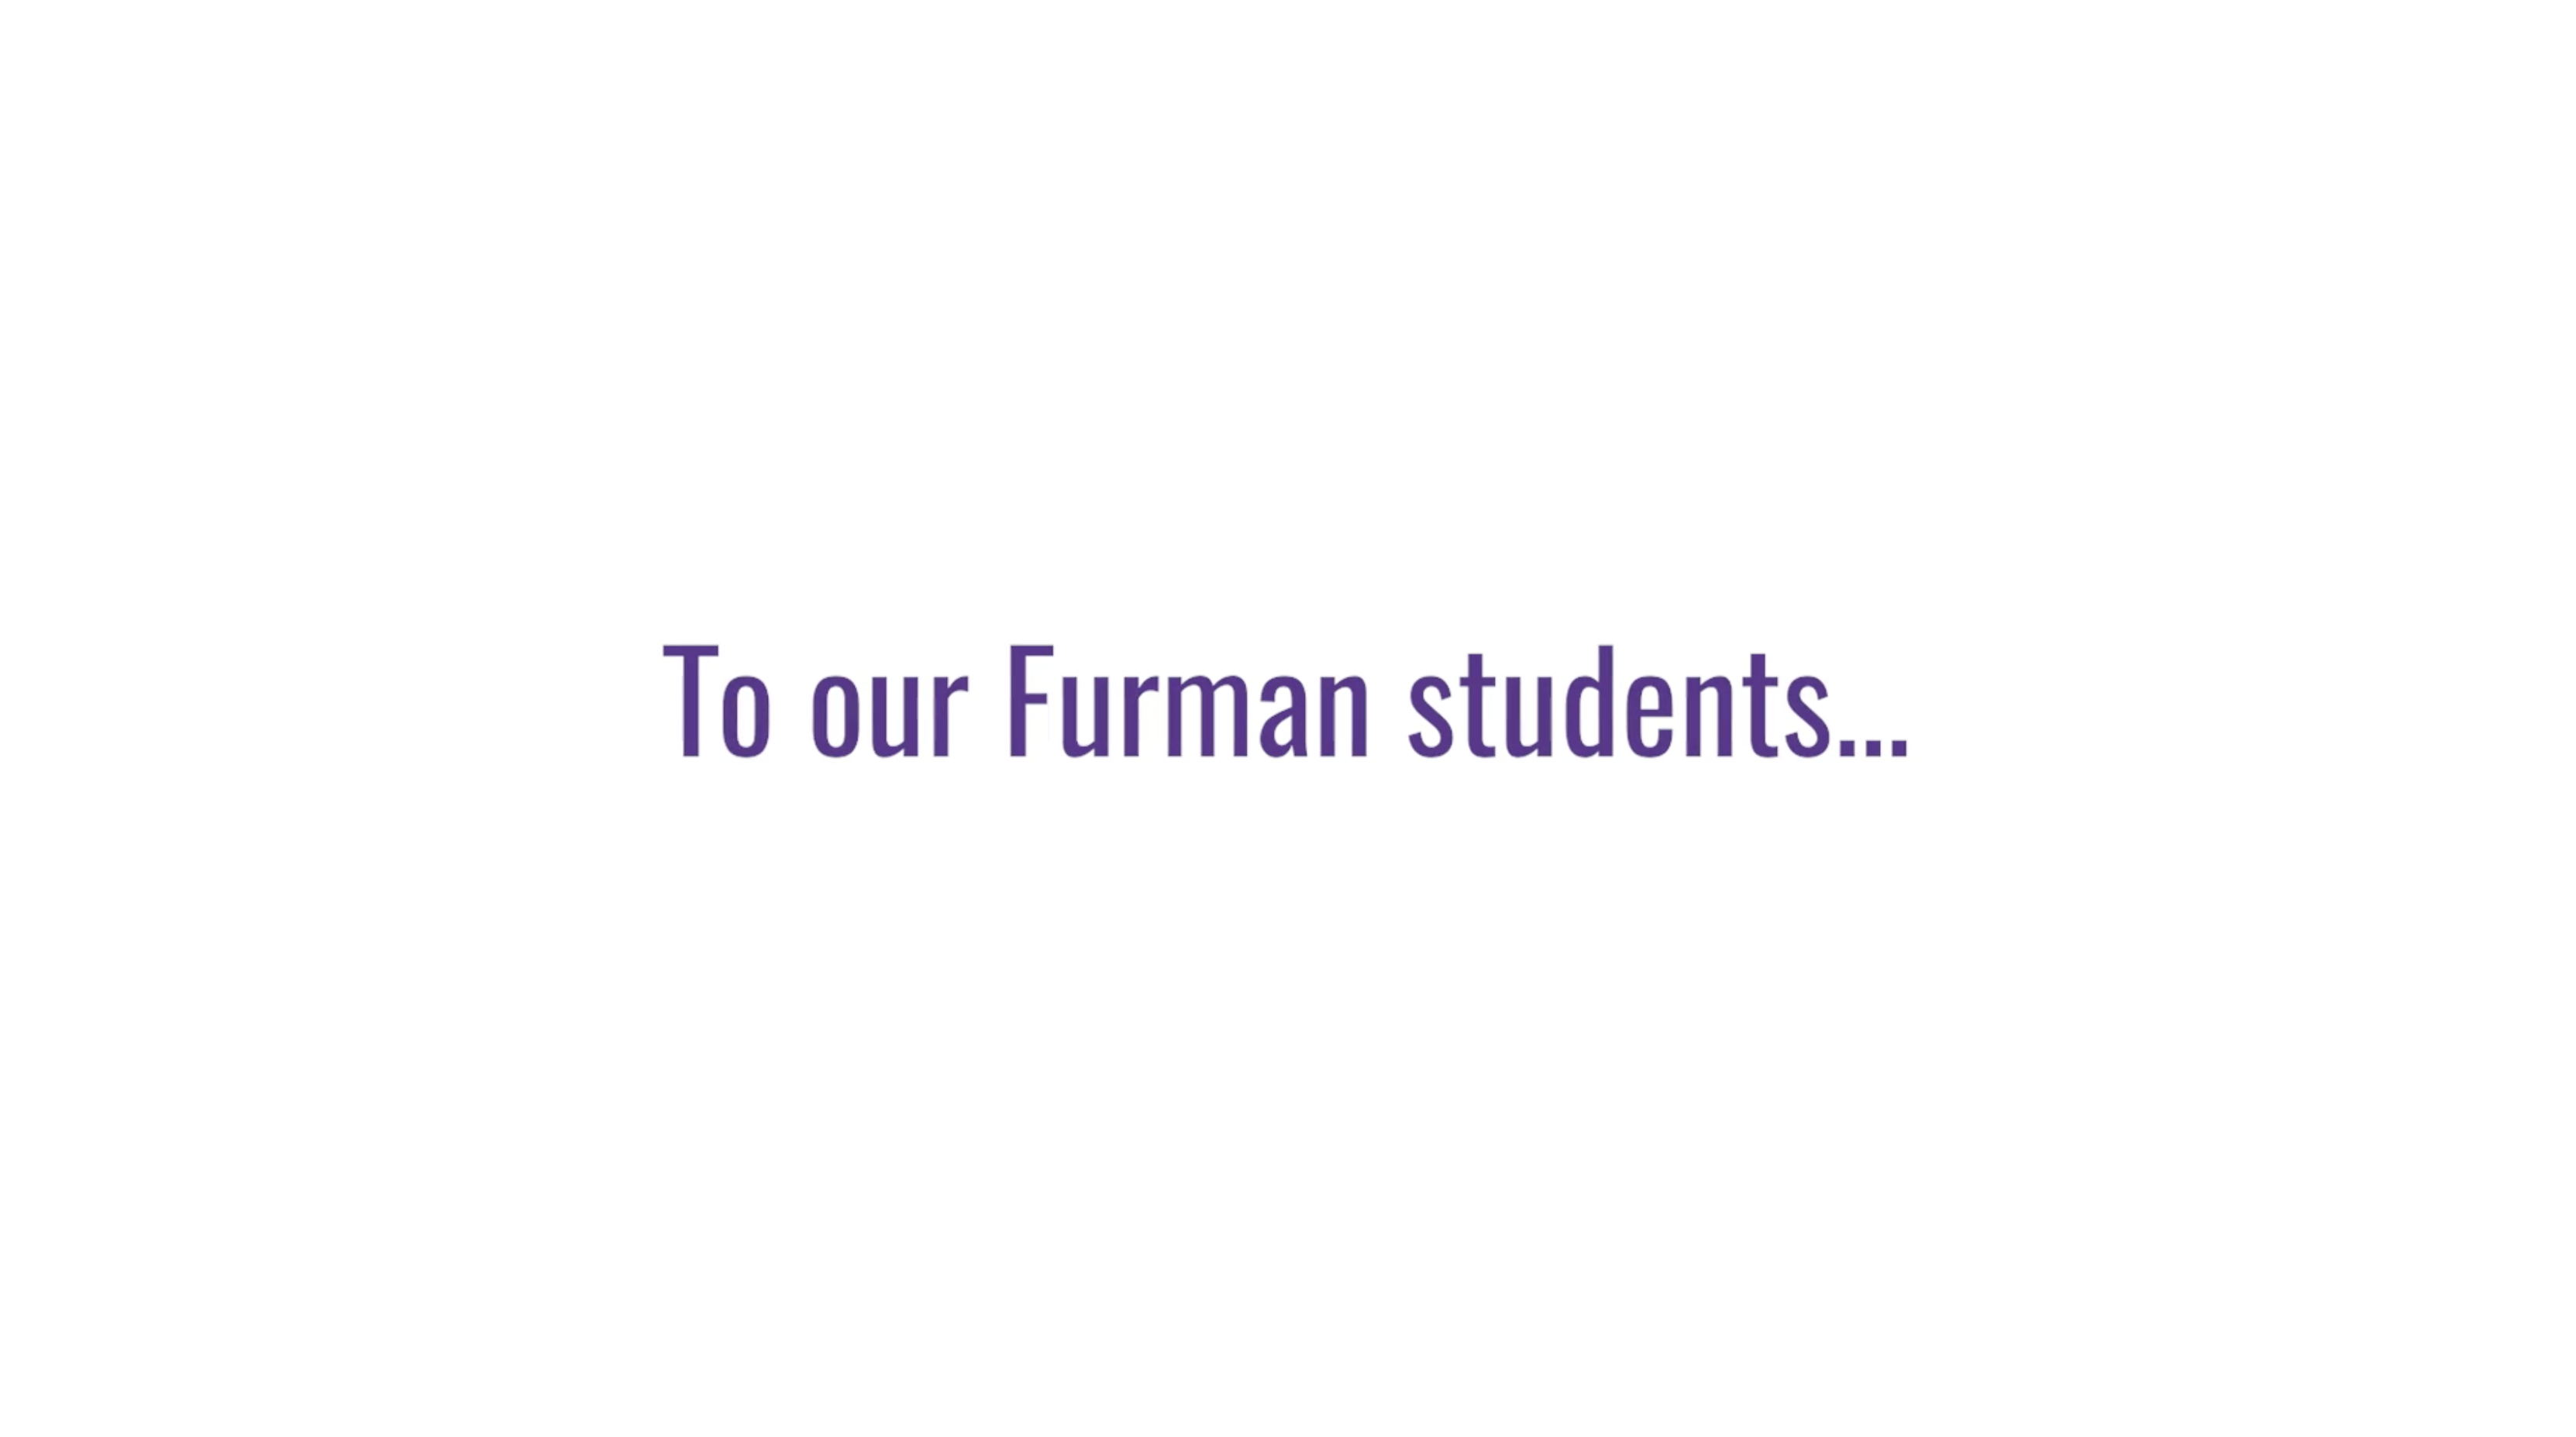 To our Furman students